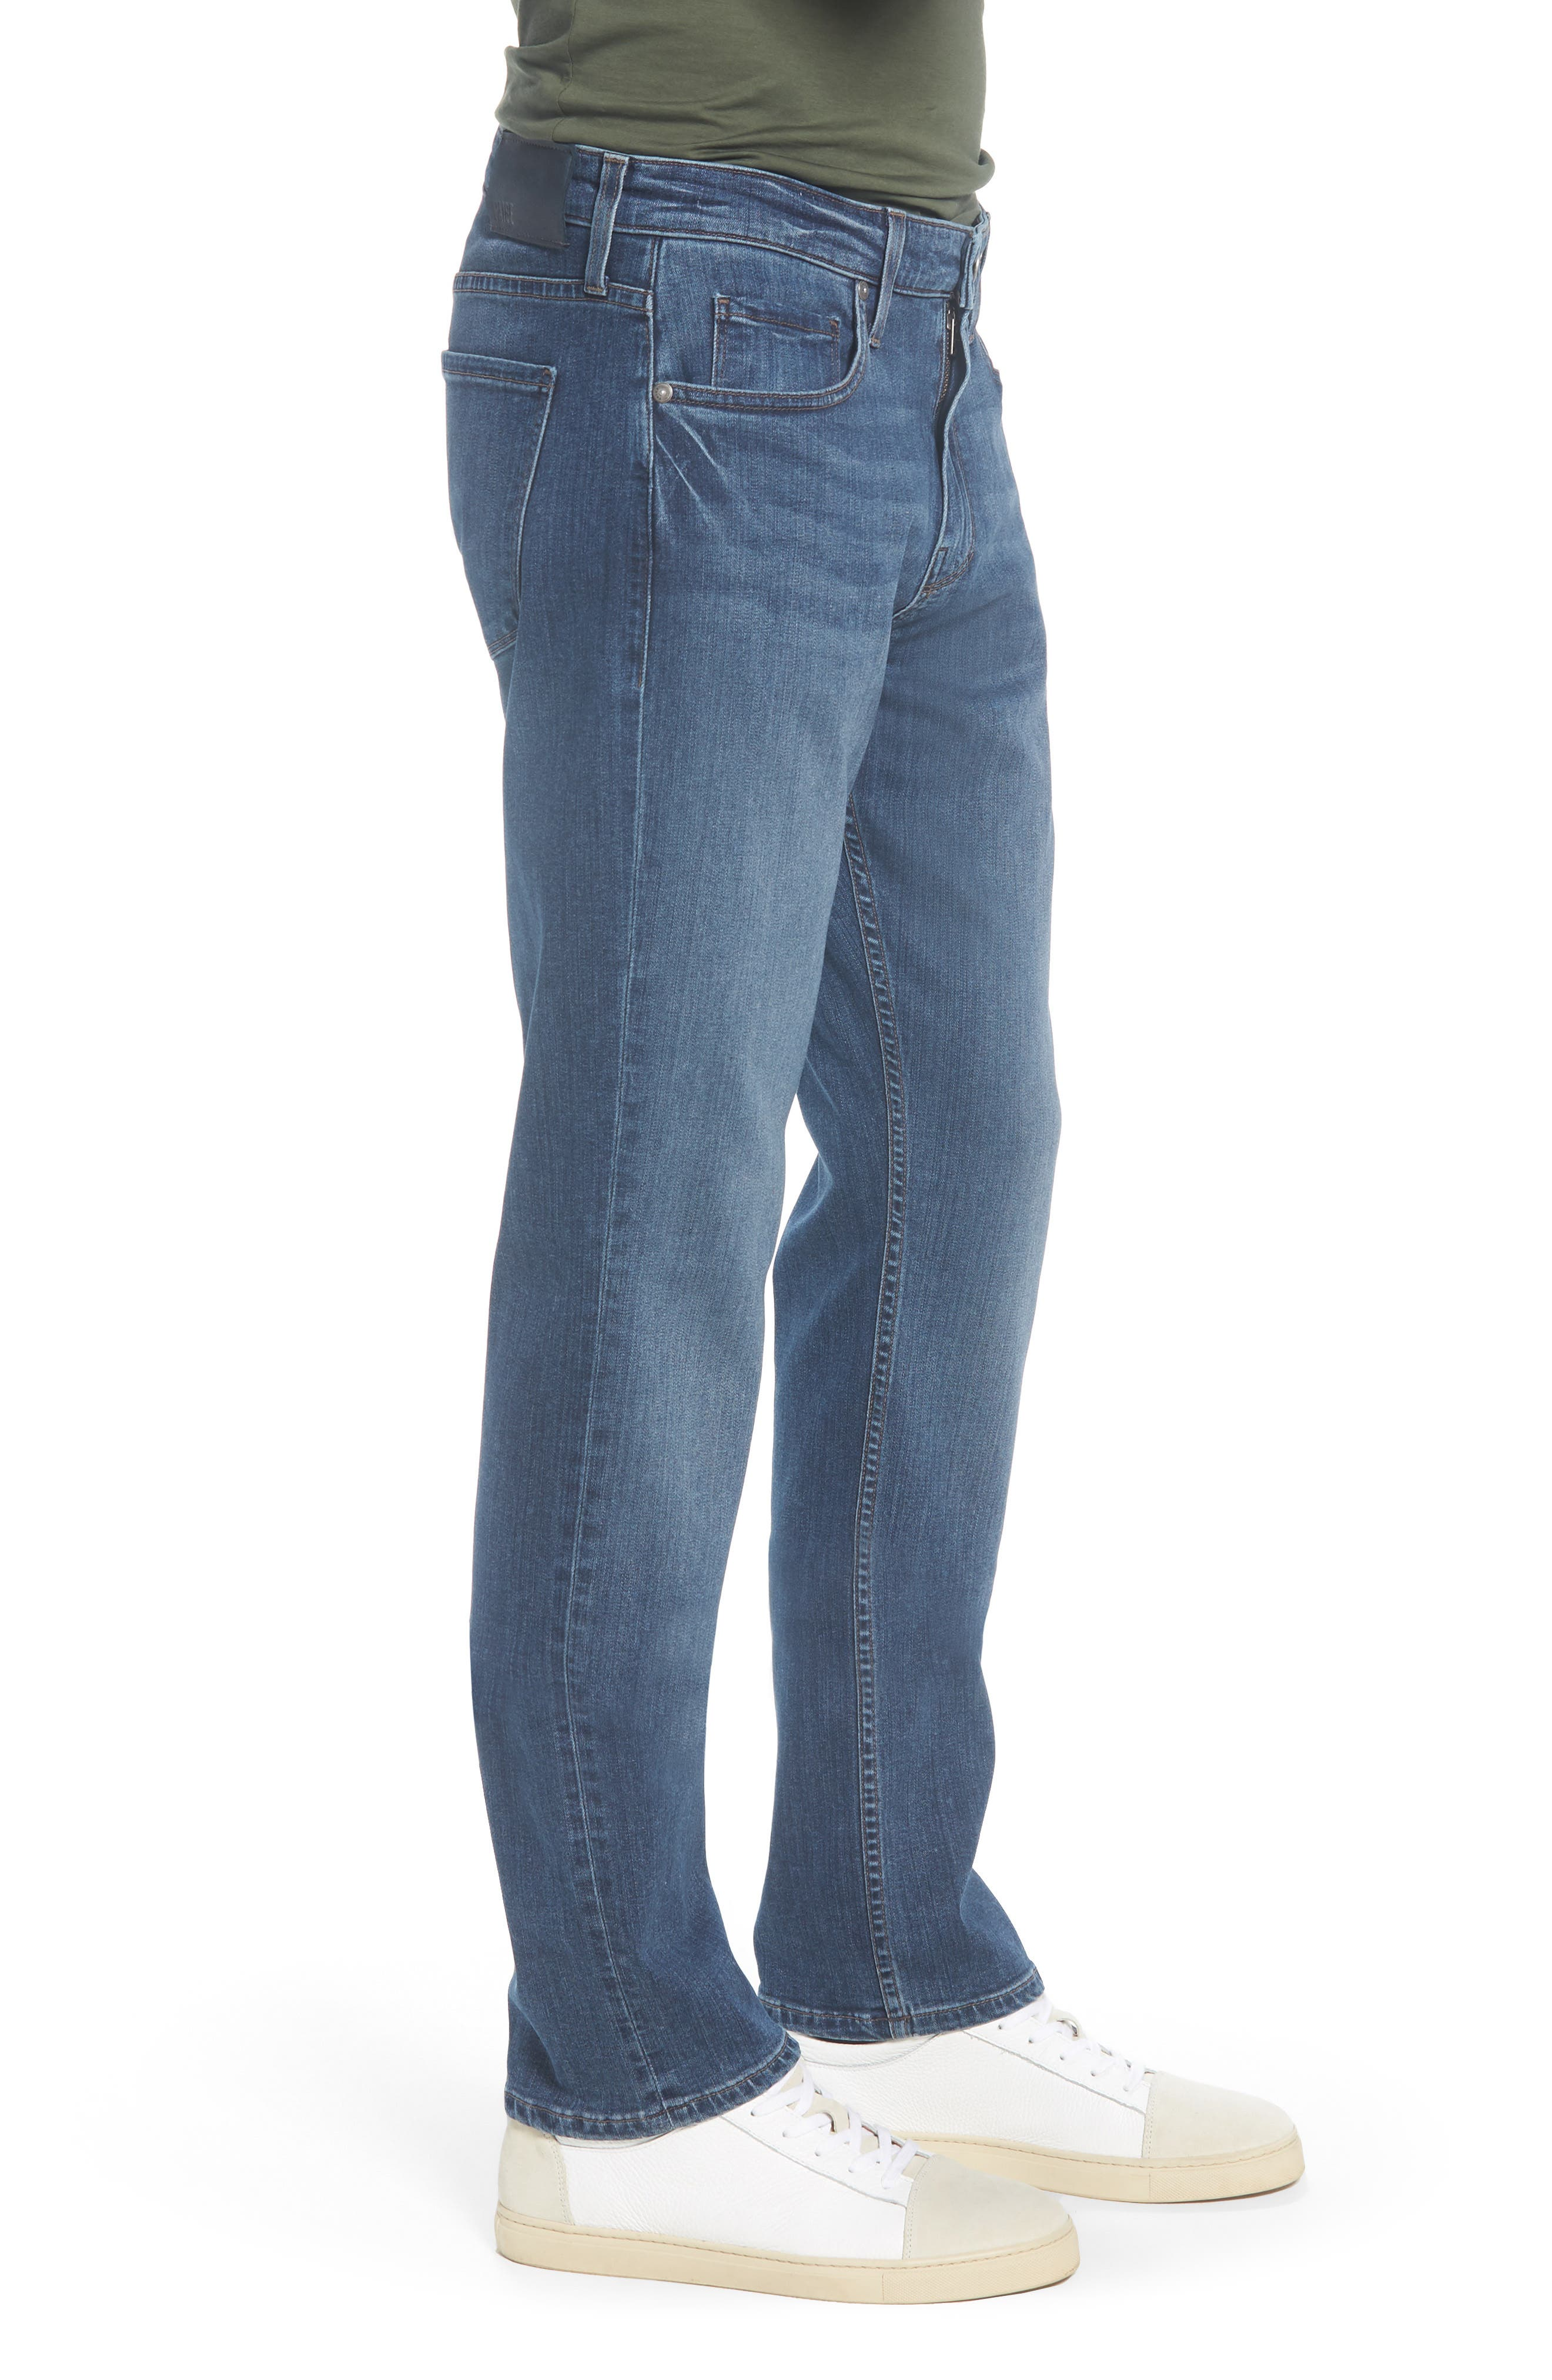 PAIGE,                             Federal Slim Straight Leg Jeans,                             Alternate thumbnail 3, color,                             400